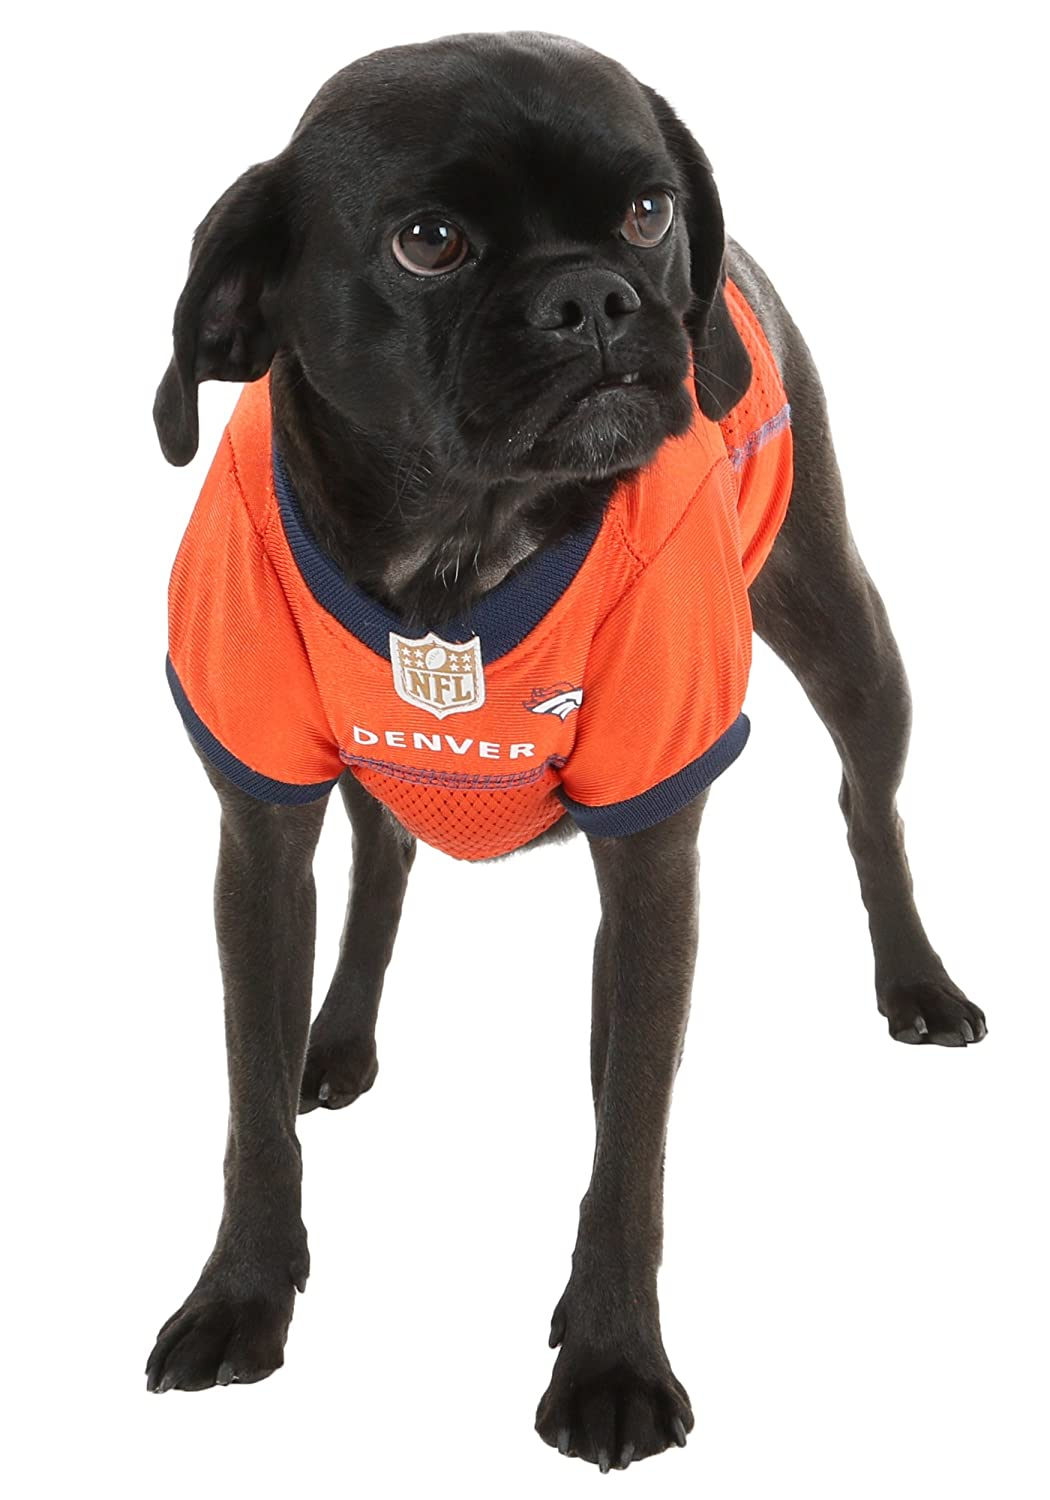 Denver Broncos Dog Mesh Jersey (X-Large)